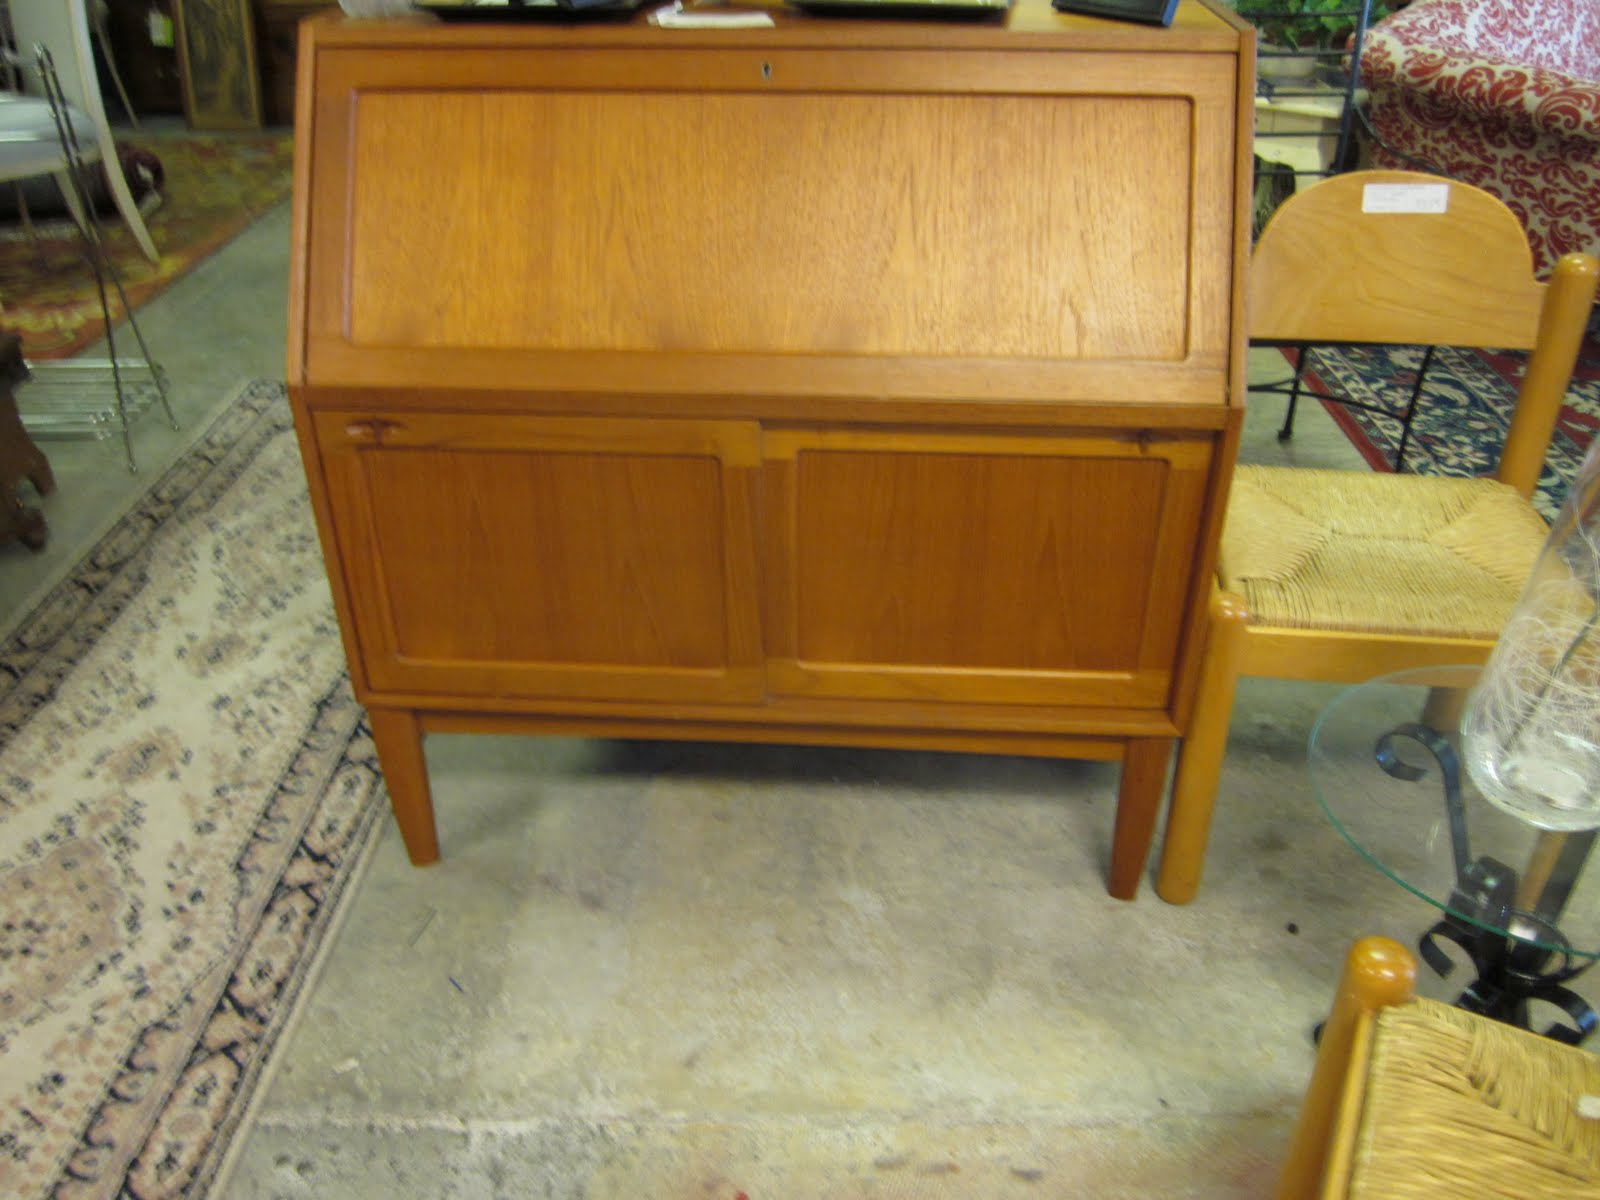 Kansas City Furniture Craigslist | Motorcycle Review and Galleries